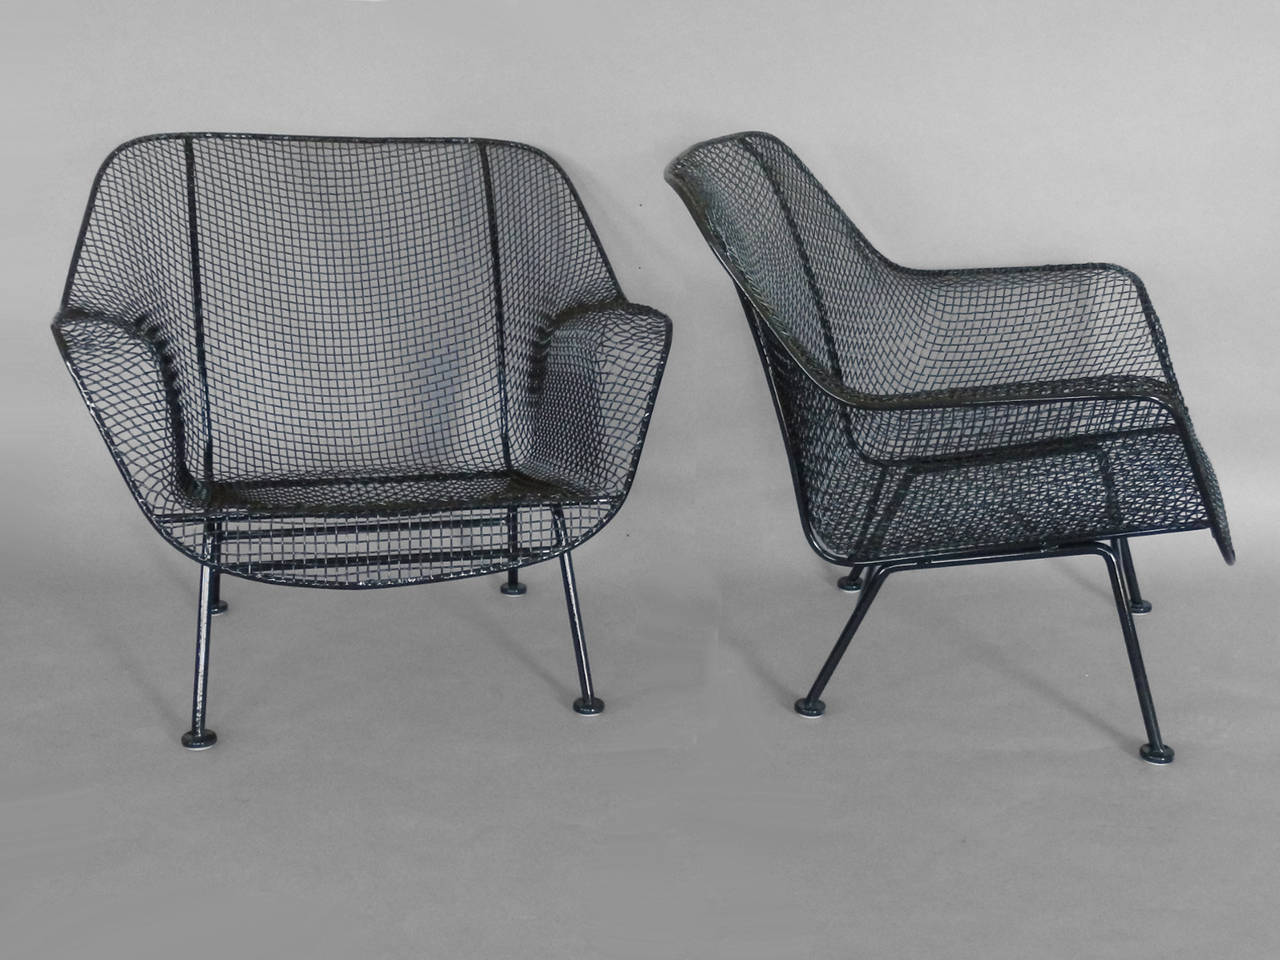 Pair Of Woodard Wrought Iron With Mesh Lounge Chairs At